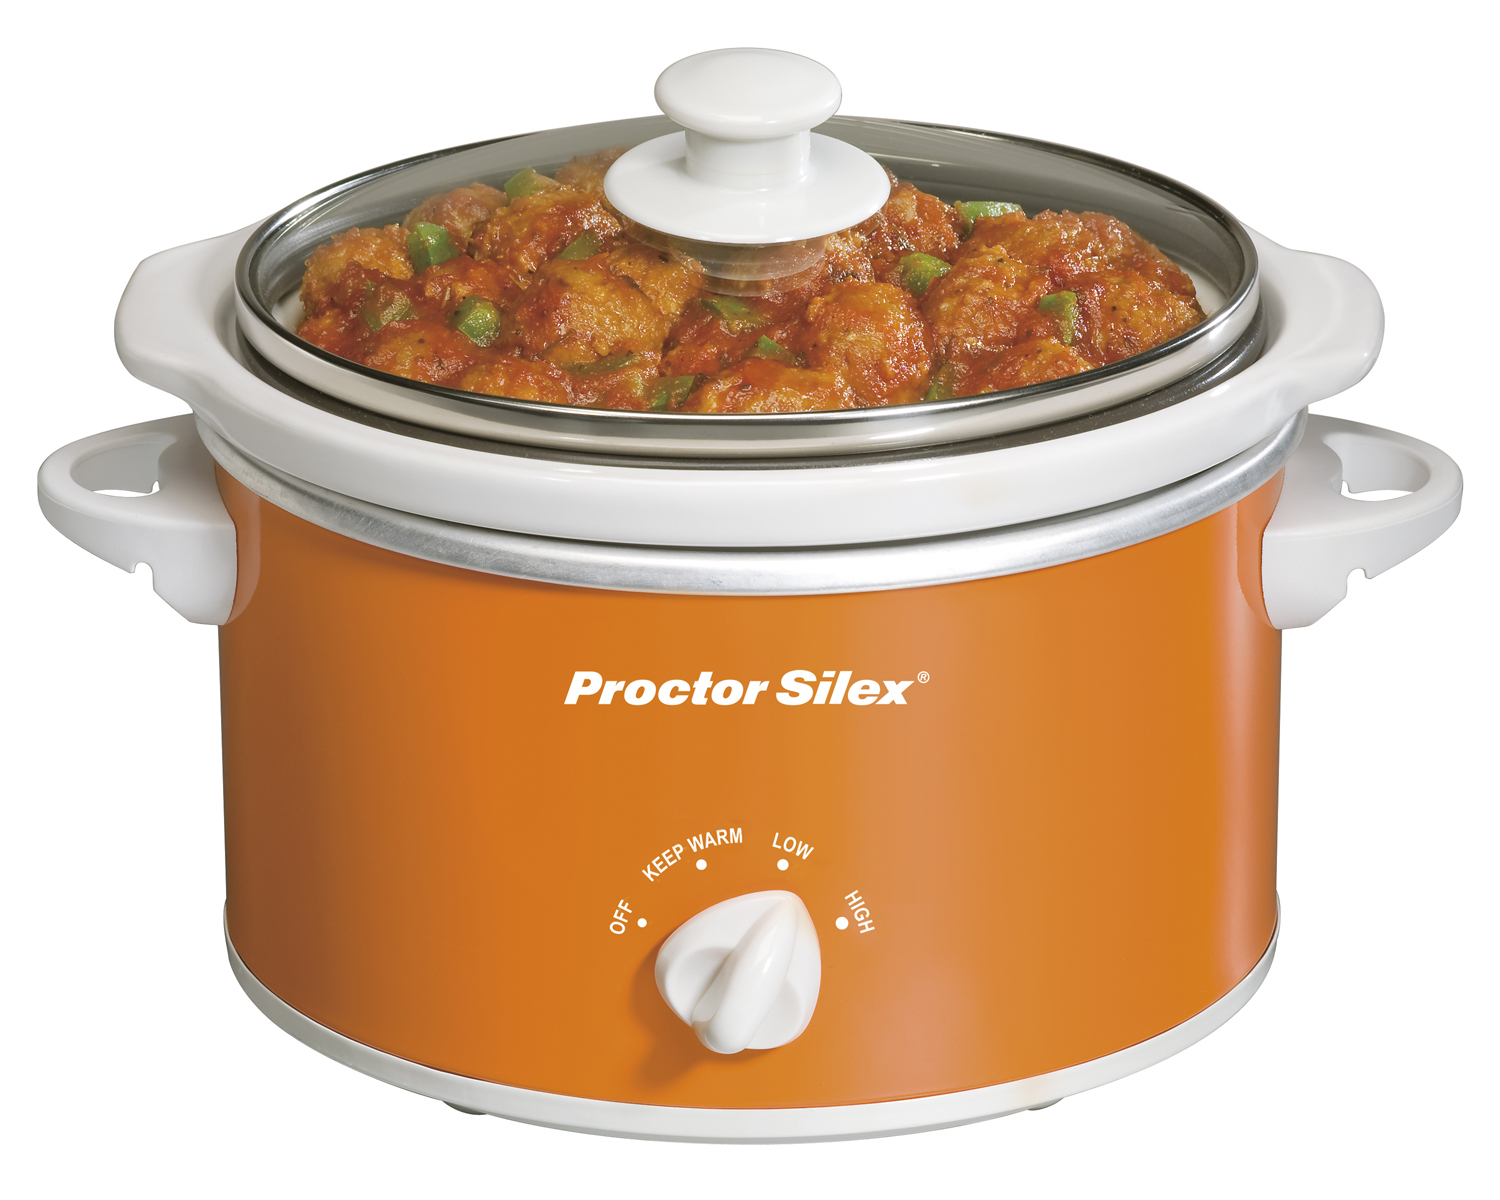 Proctor Silex Oval 1.5 Quart Slow Cooker Party Dipper | 33112Y